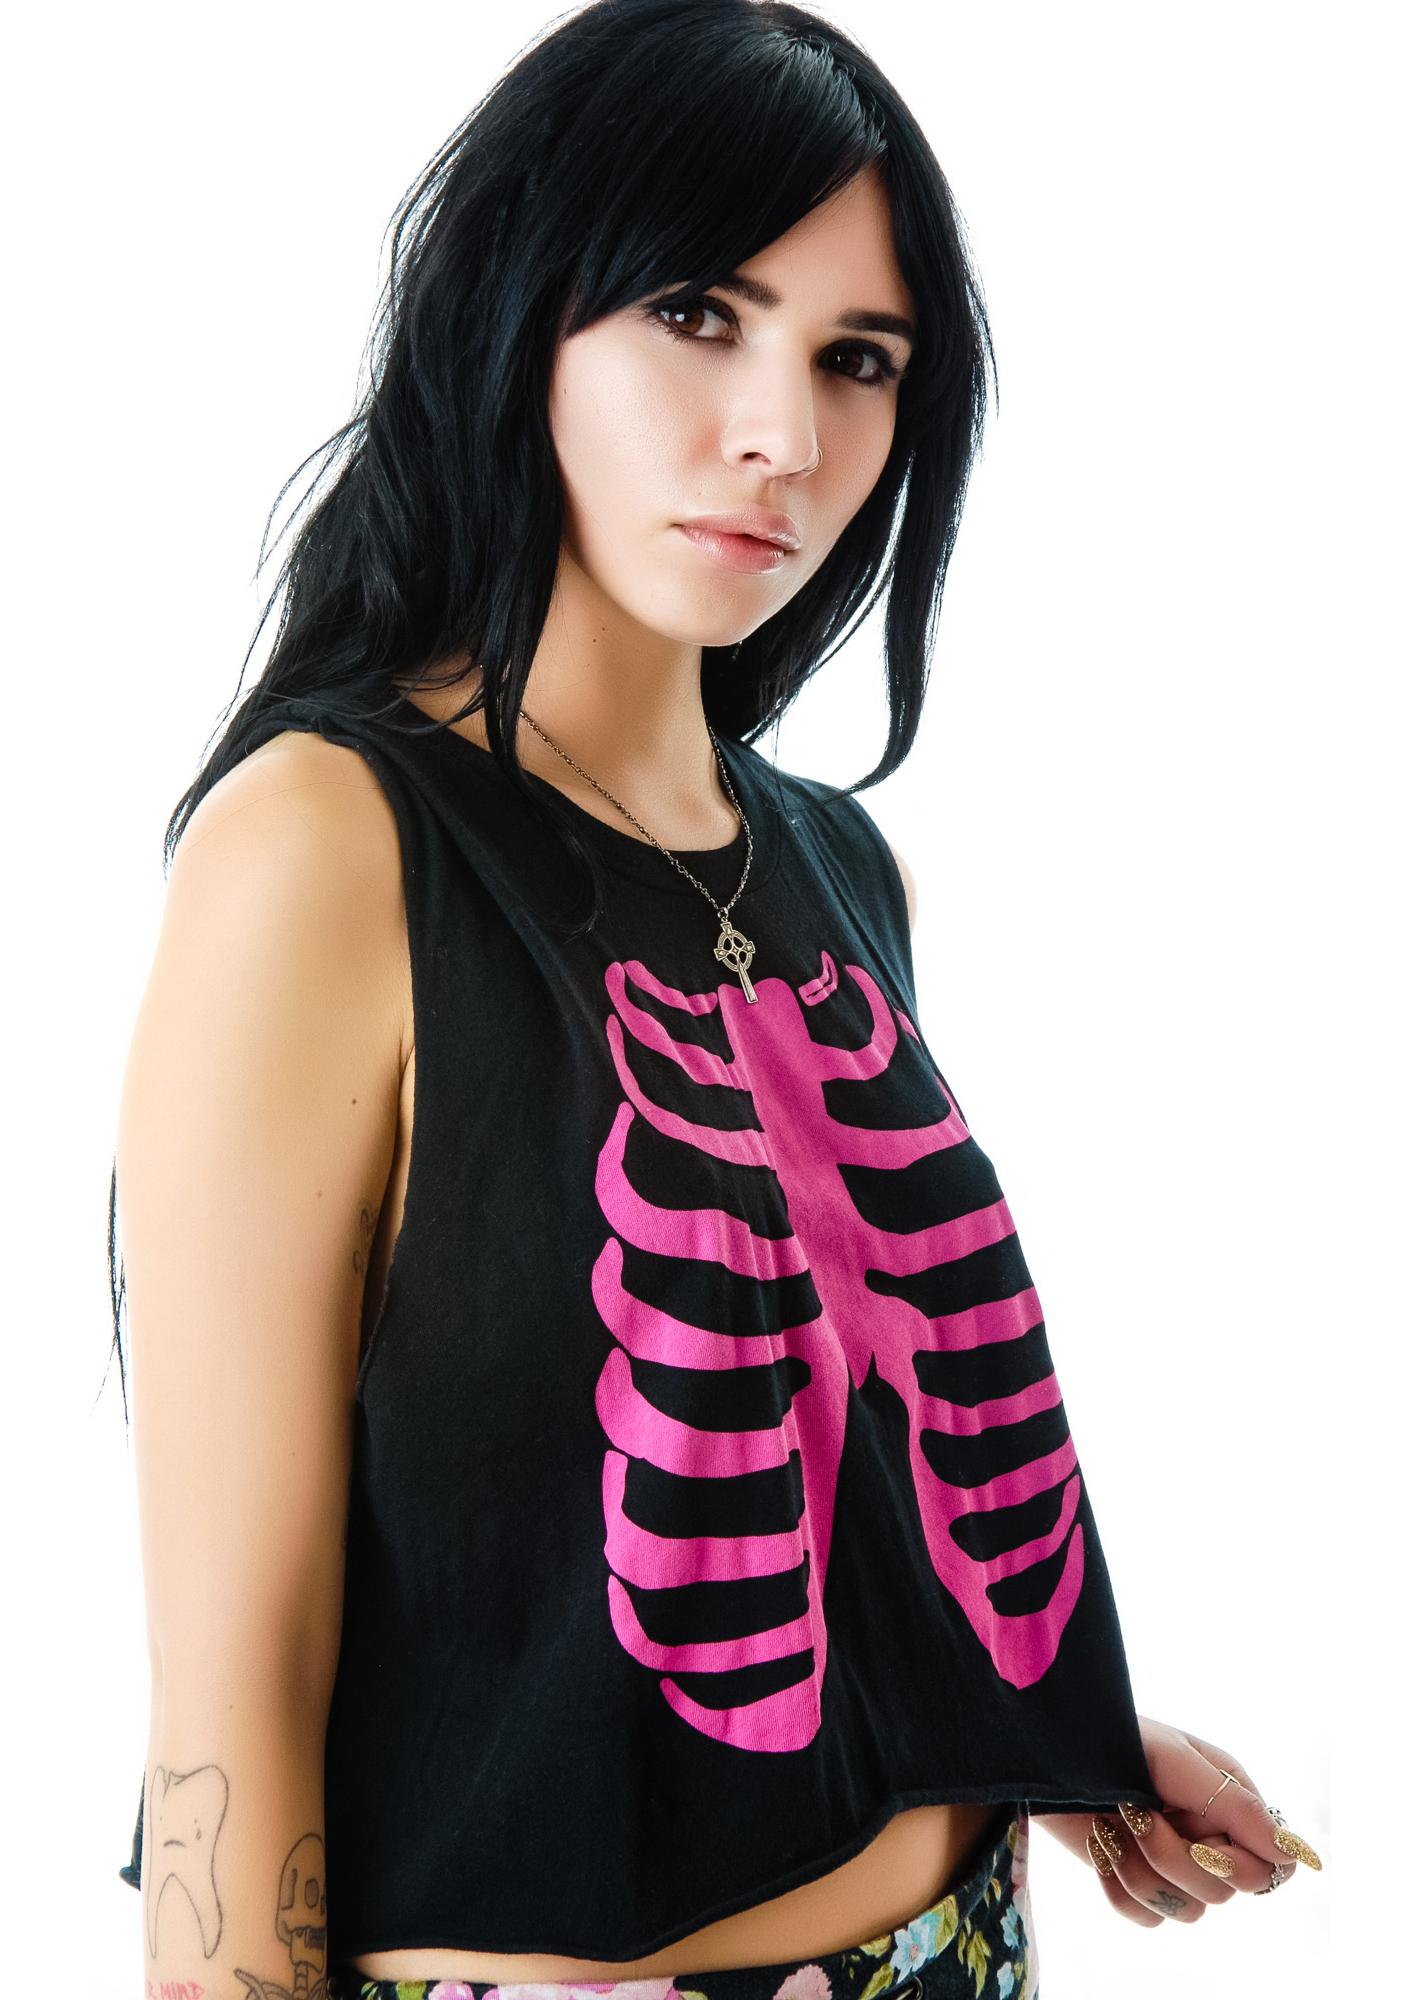 Wildfox Couture Skeleton Charlie Tank